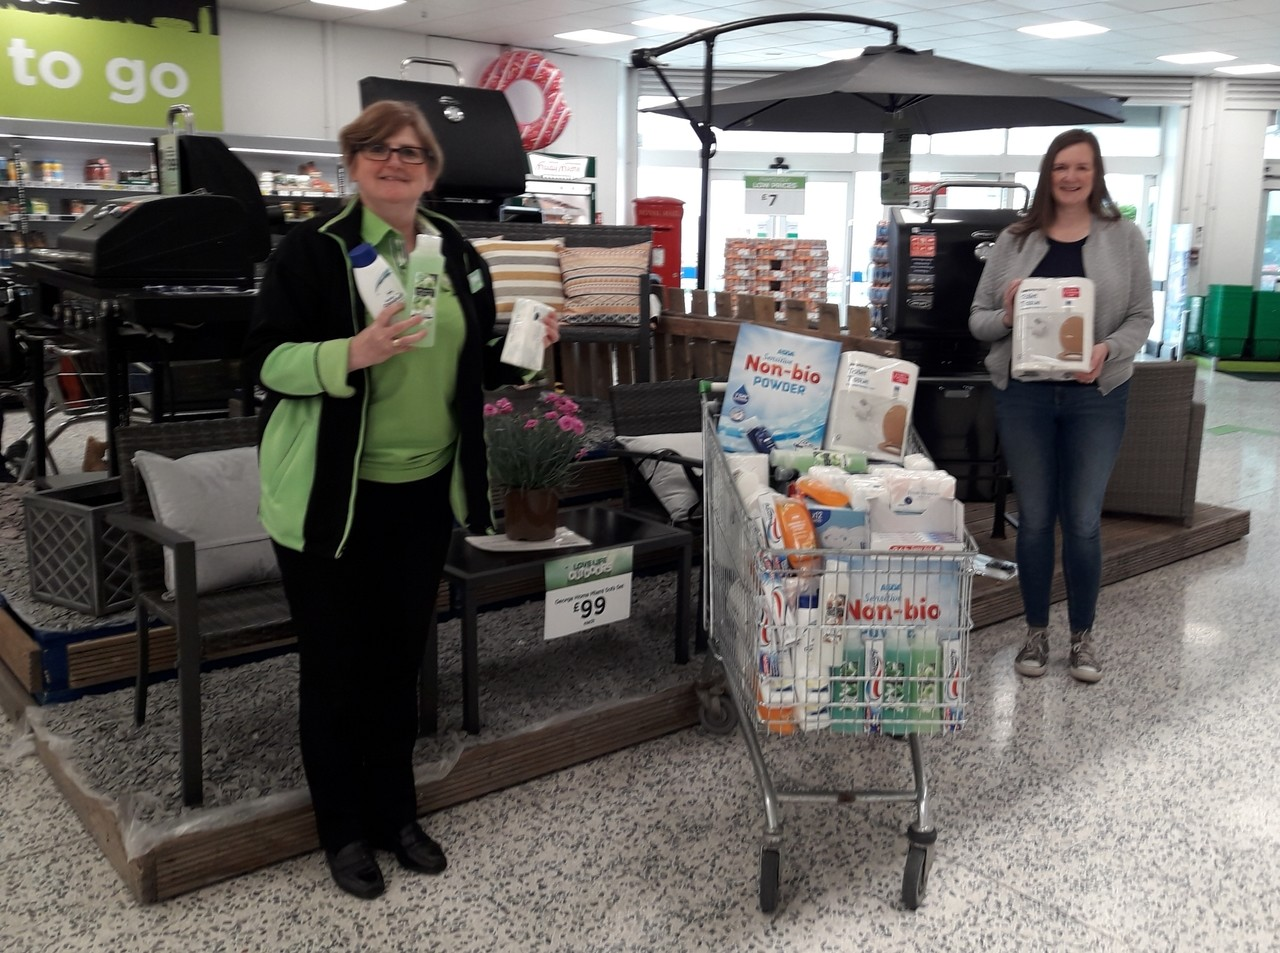 Time for donations | Asda Kirkcaldy